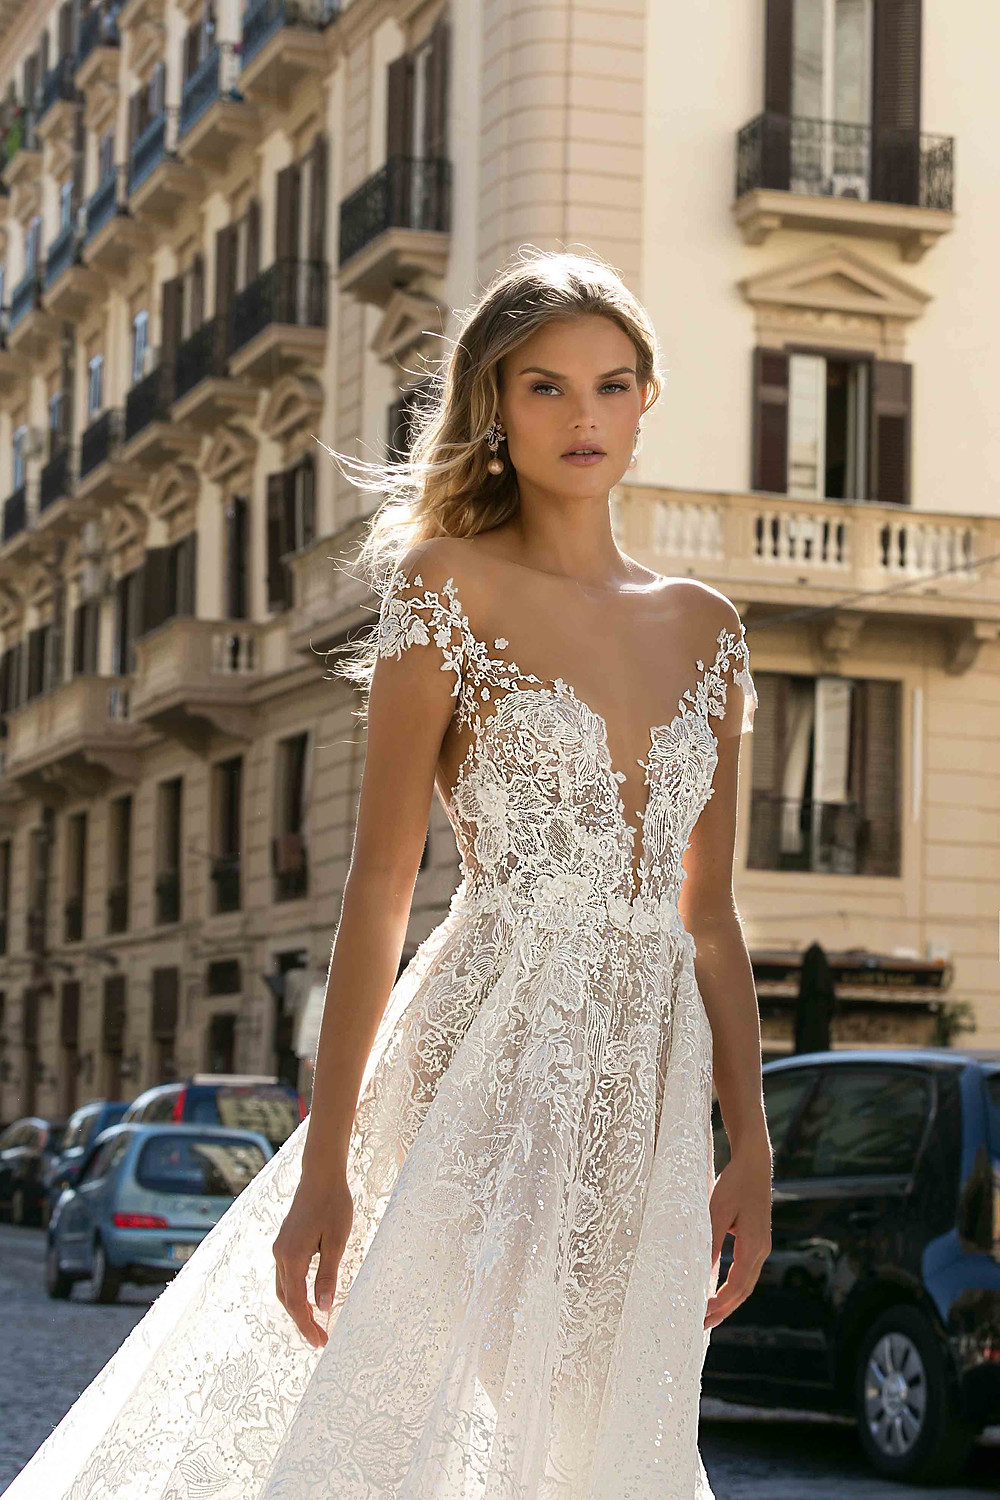 A Berta 2020 off the shoulder, A-line lace wedding dress, with an illusion deep v neckline